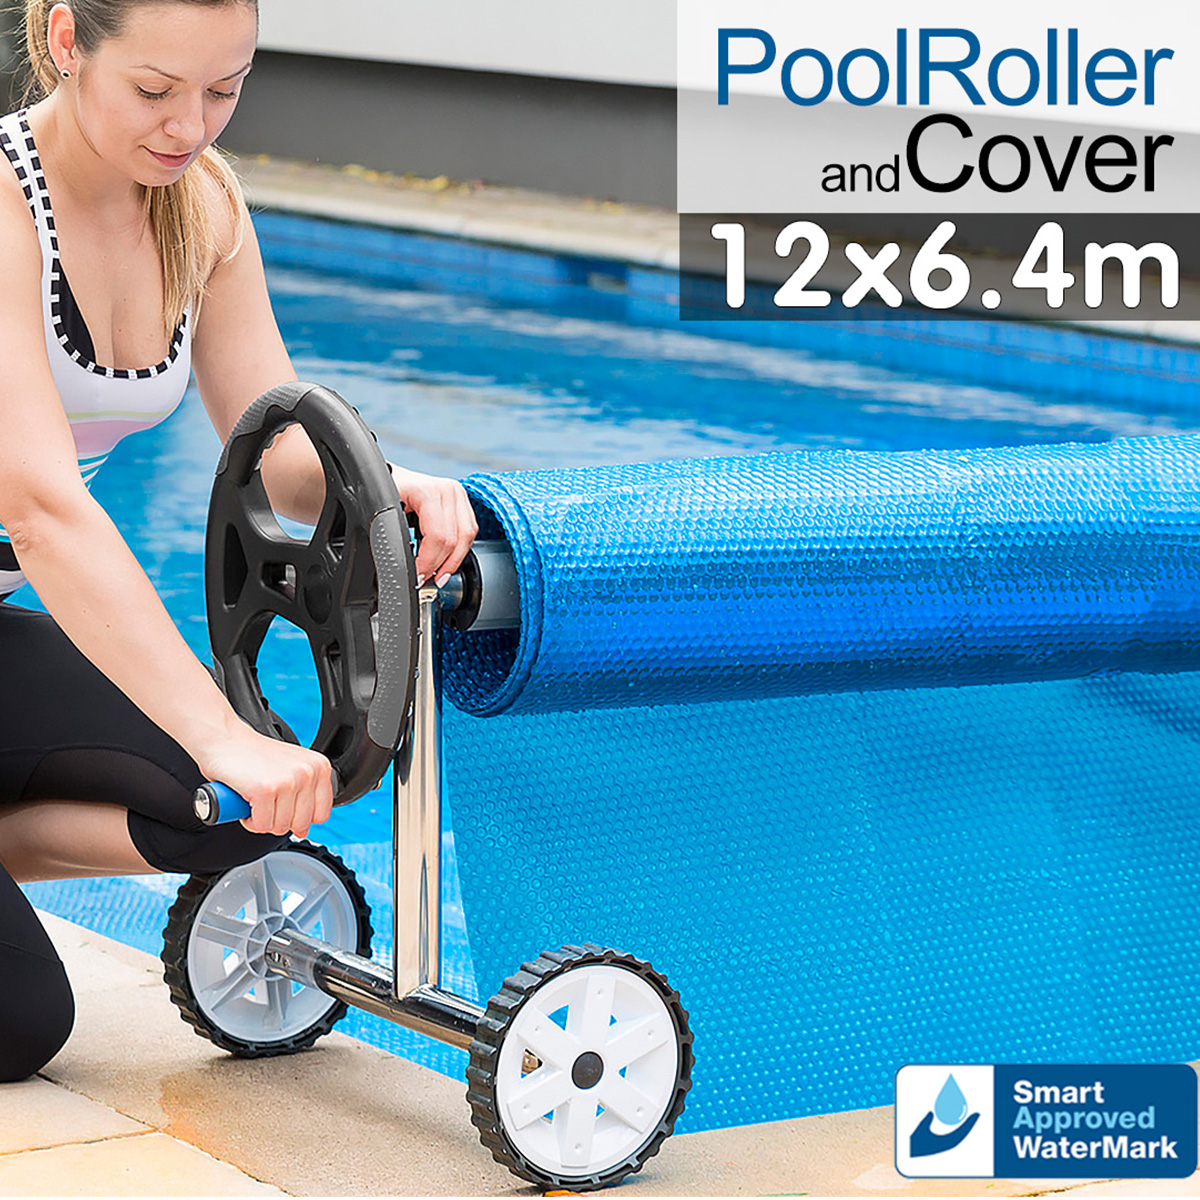 Pool Cover and Roller 12 x 6.4m